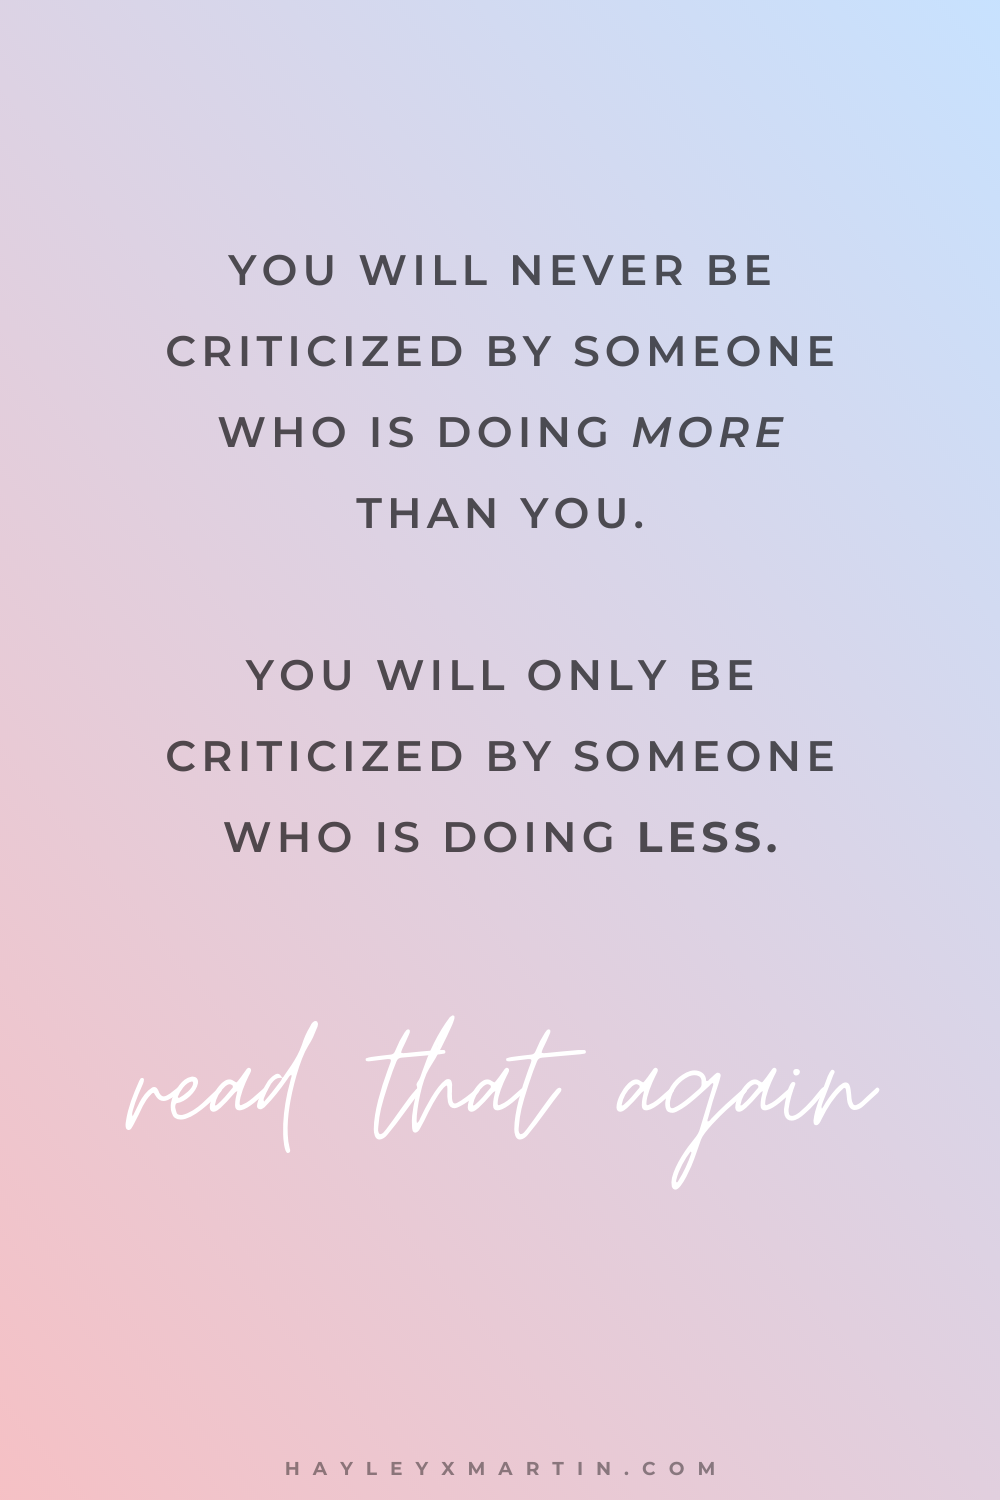 YOU WILL NEVER BE CRITICIZED BY SOMEONE WHO IS DOING MORE THAN YOU. YOU WILL ONLY BE CRITICIZED BY SOMEONE WHO IS DOING LESS. | HAYLEYXMARTIN